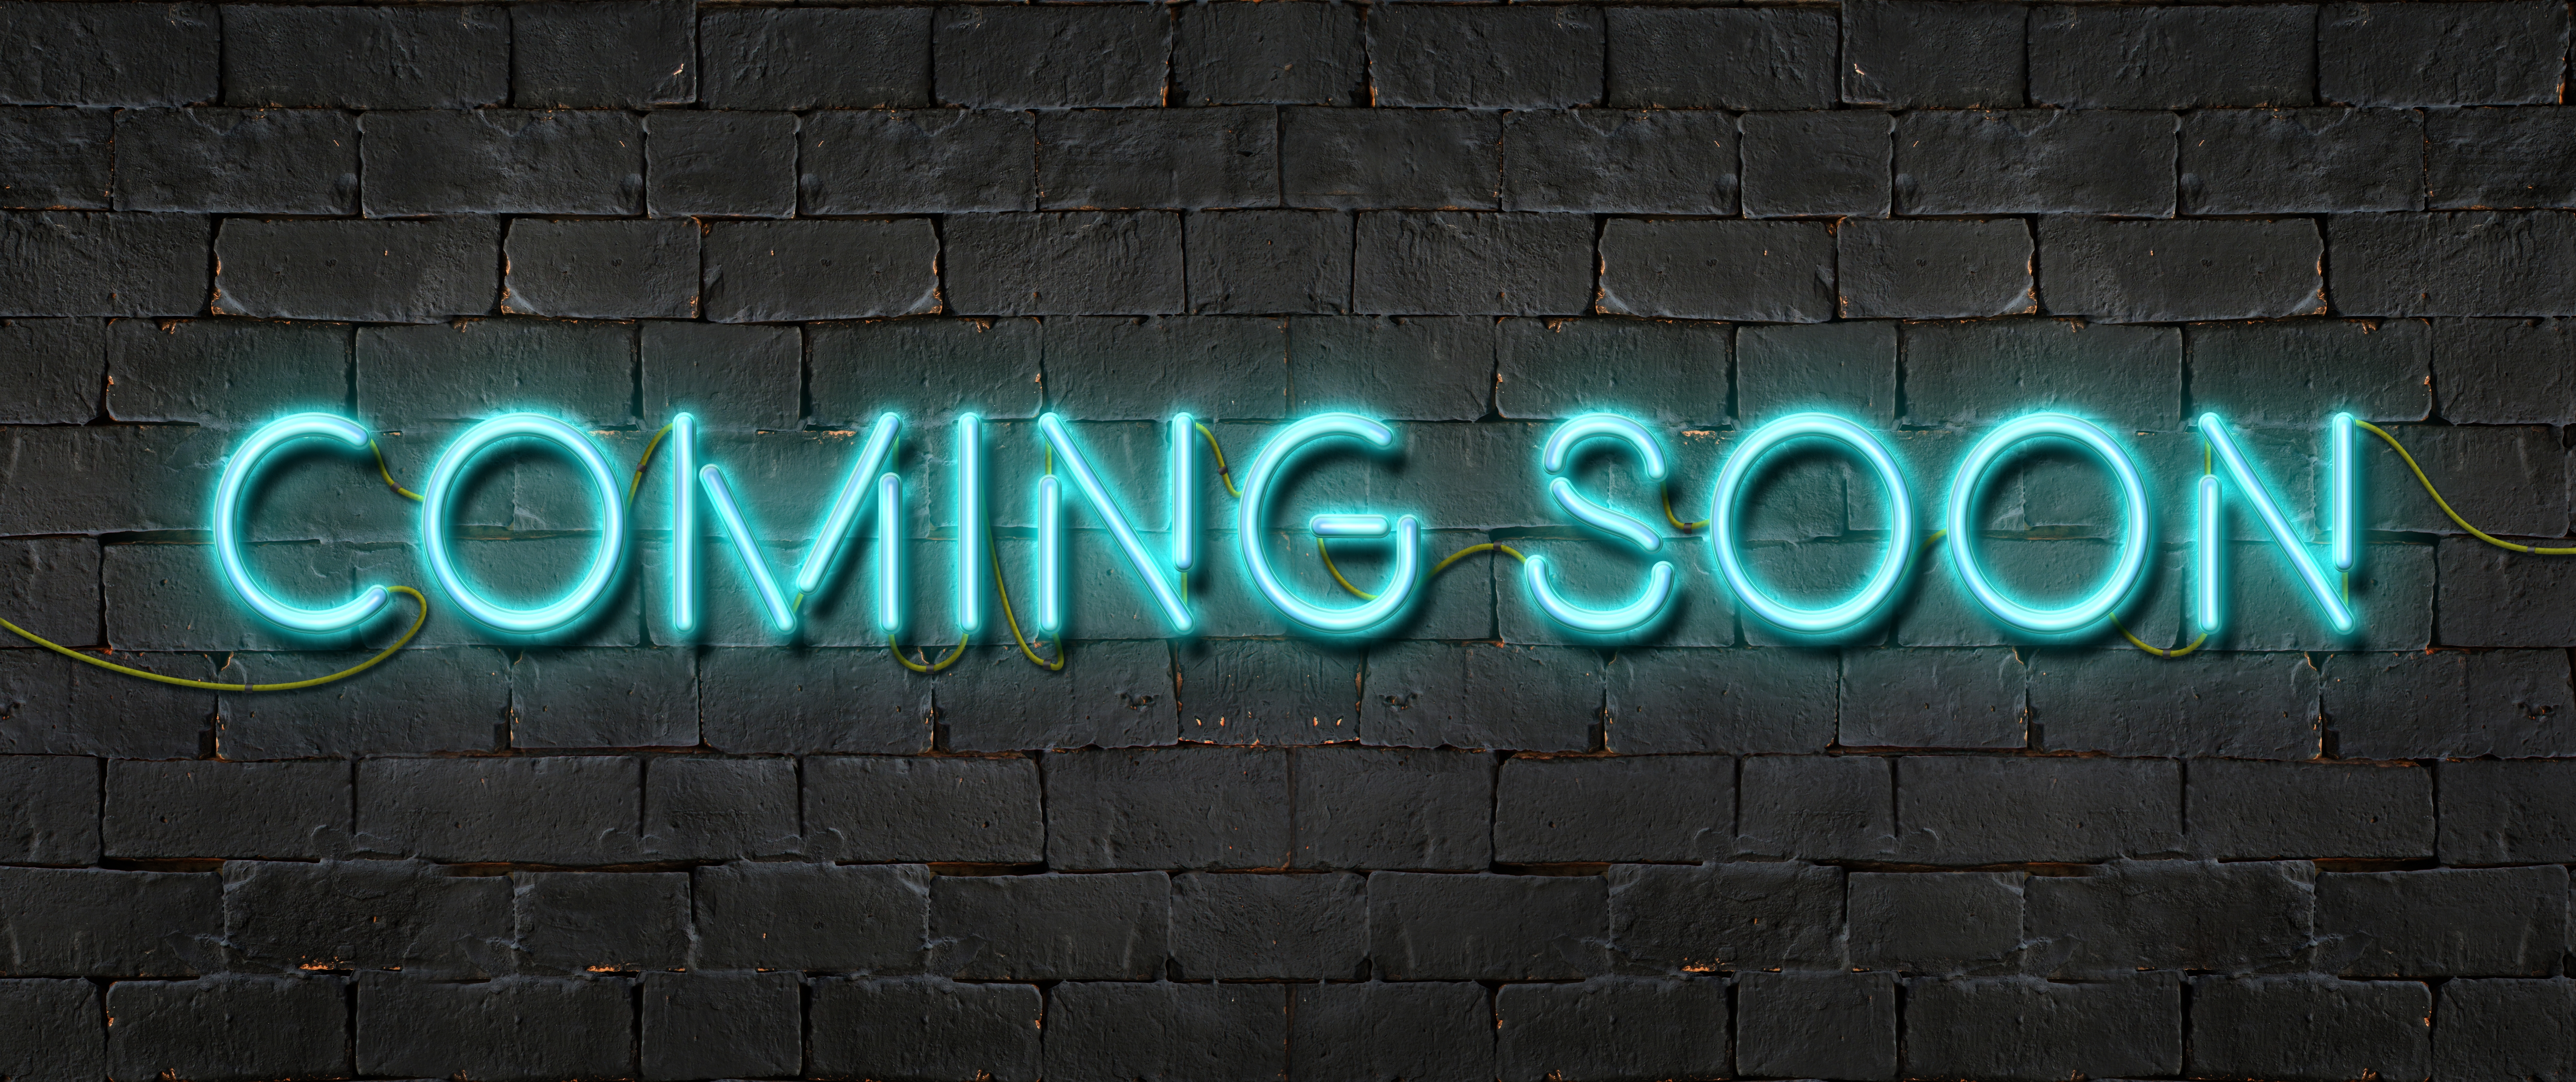 Coming Soon Neon Sign Shining On Black Brick Wall Agc Of America Centennial